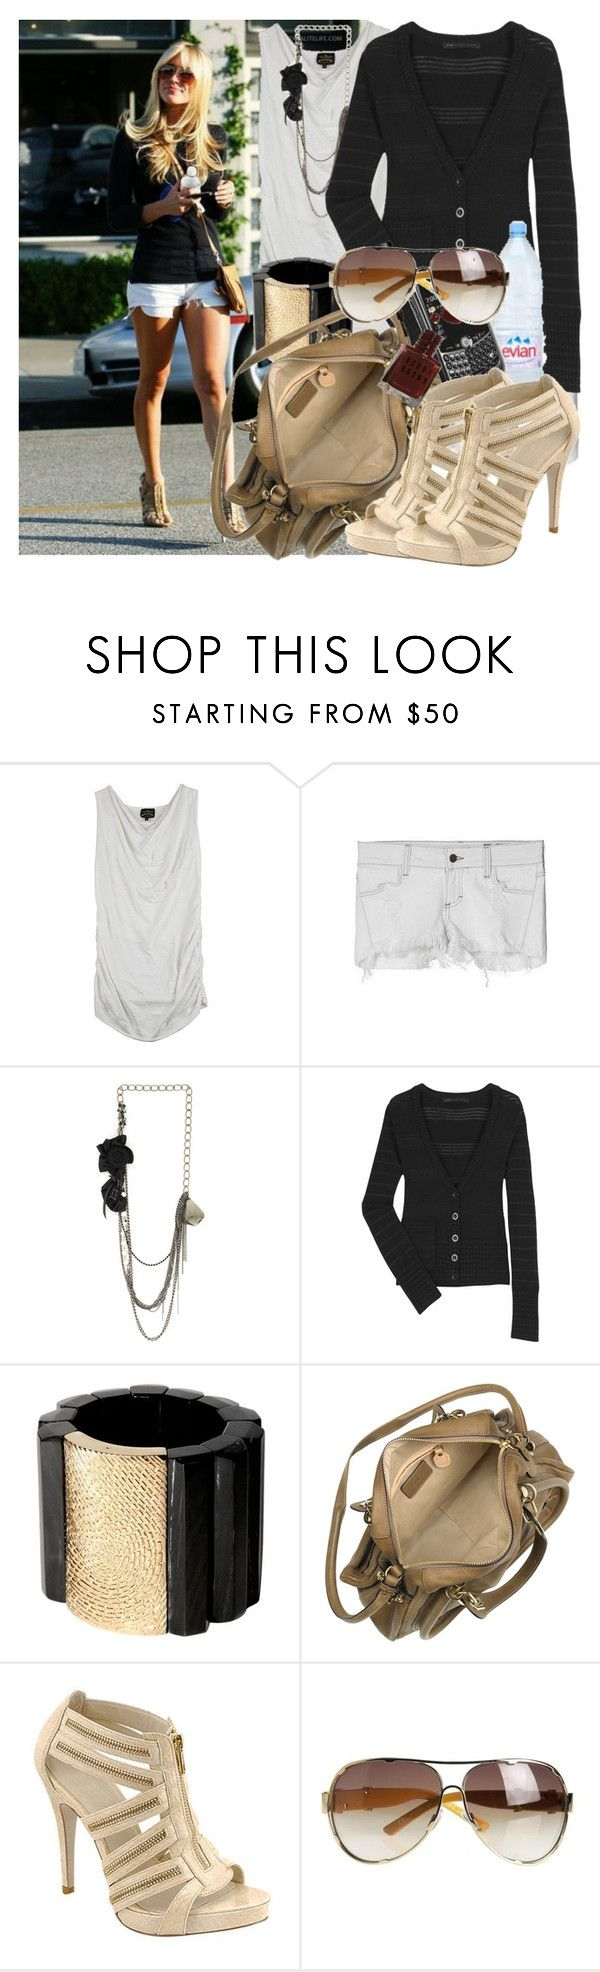 """Kristin Cavallari"" by m2mel ❤ liked on Polyvore featuring Kristin Cavallari, Vivienne Westwood Anglomania, Siwy, Marquis & Camus, Marc by Marc Jacobs, Roberto Cavalli, Chloé, Evian, Wild Diva and Marc Jacobs"